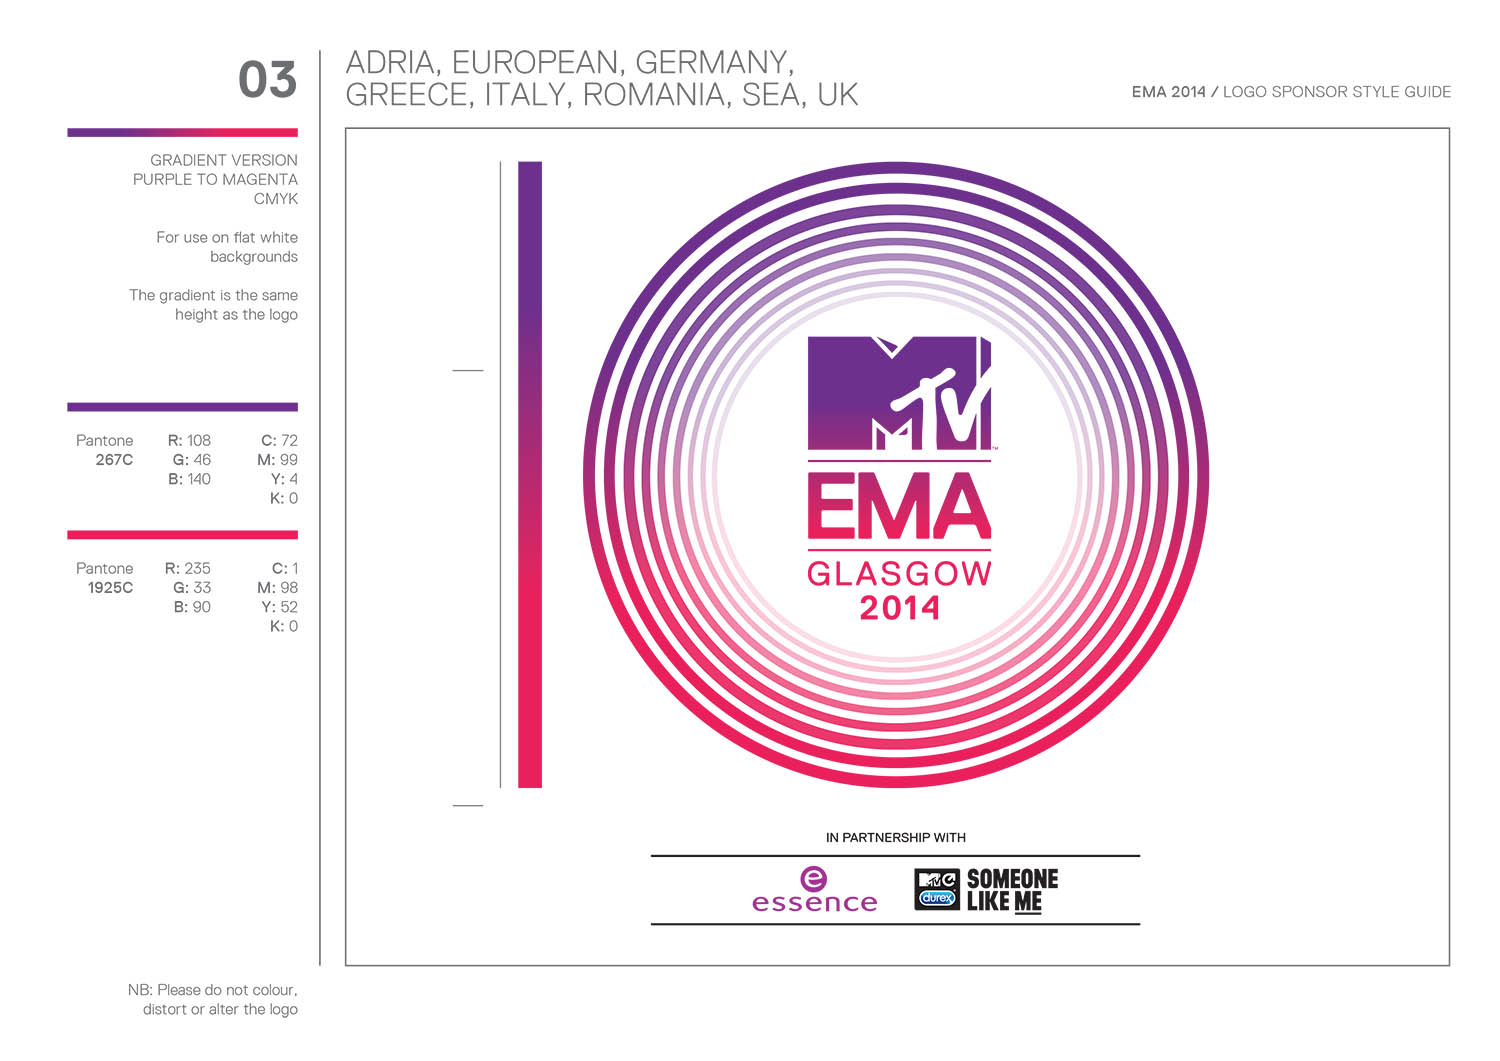 mtv ema, style guide, brand, assets, graphics, European Music Awards, Glasgow, 2014